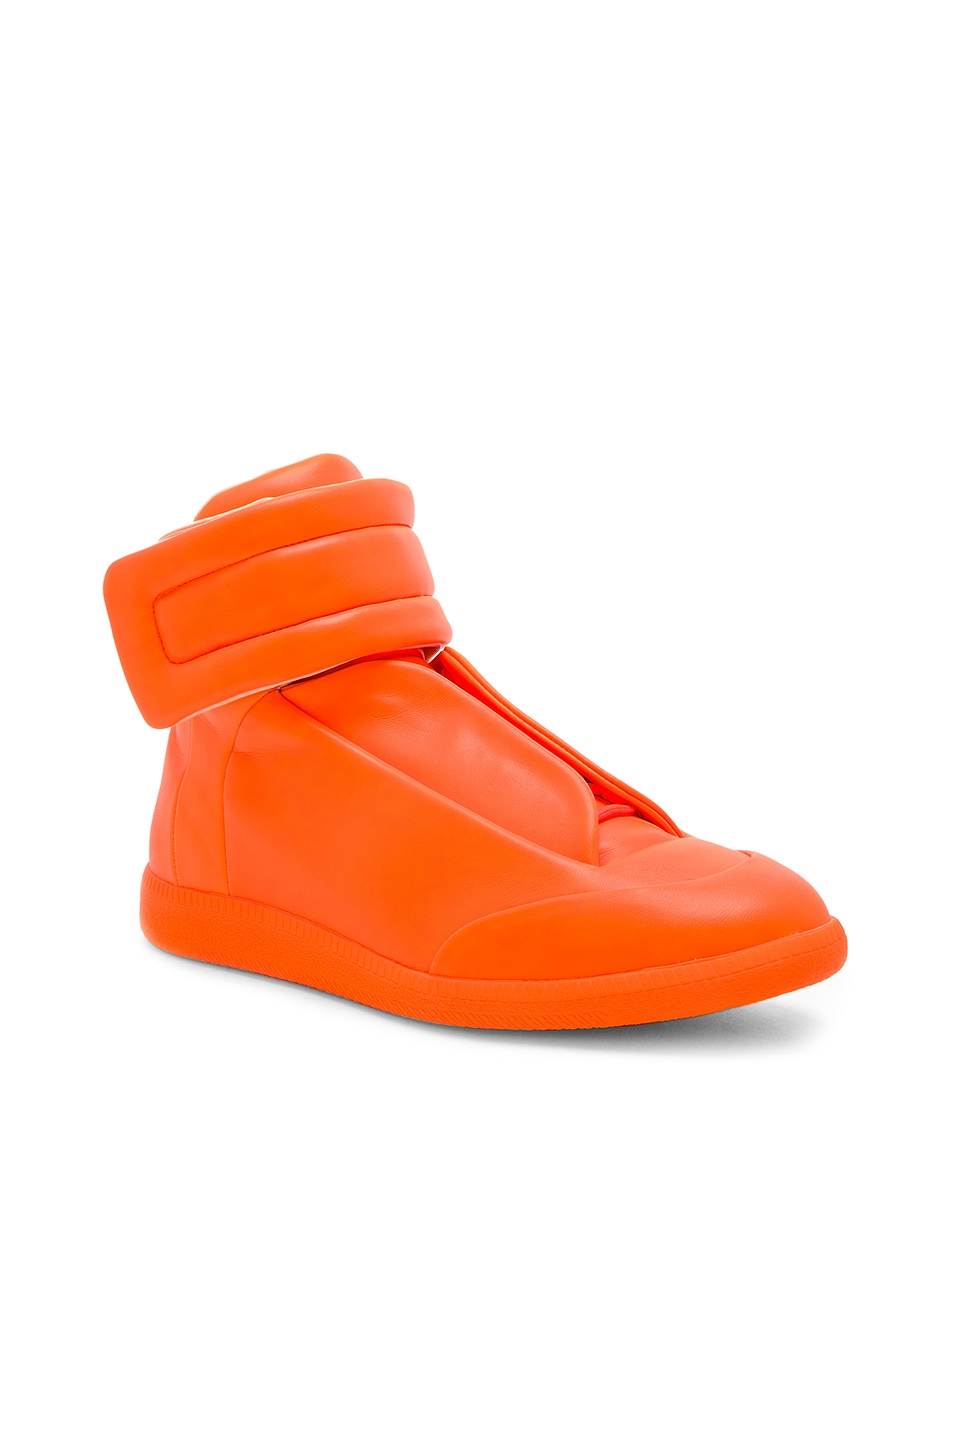 Maison MargielaFuture High Top in Neon, .